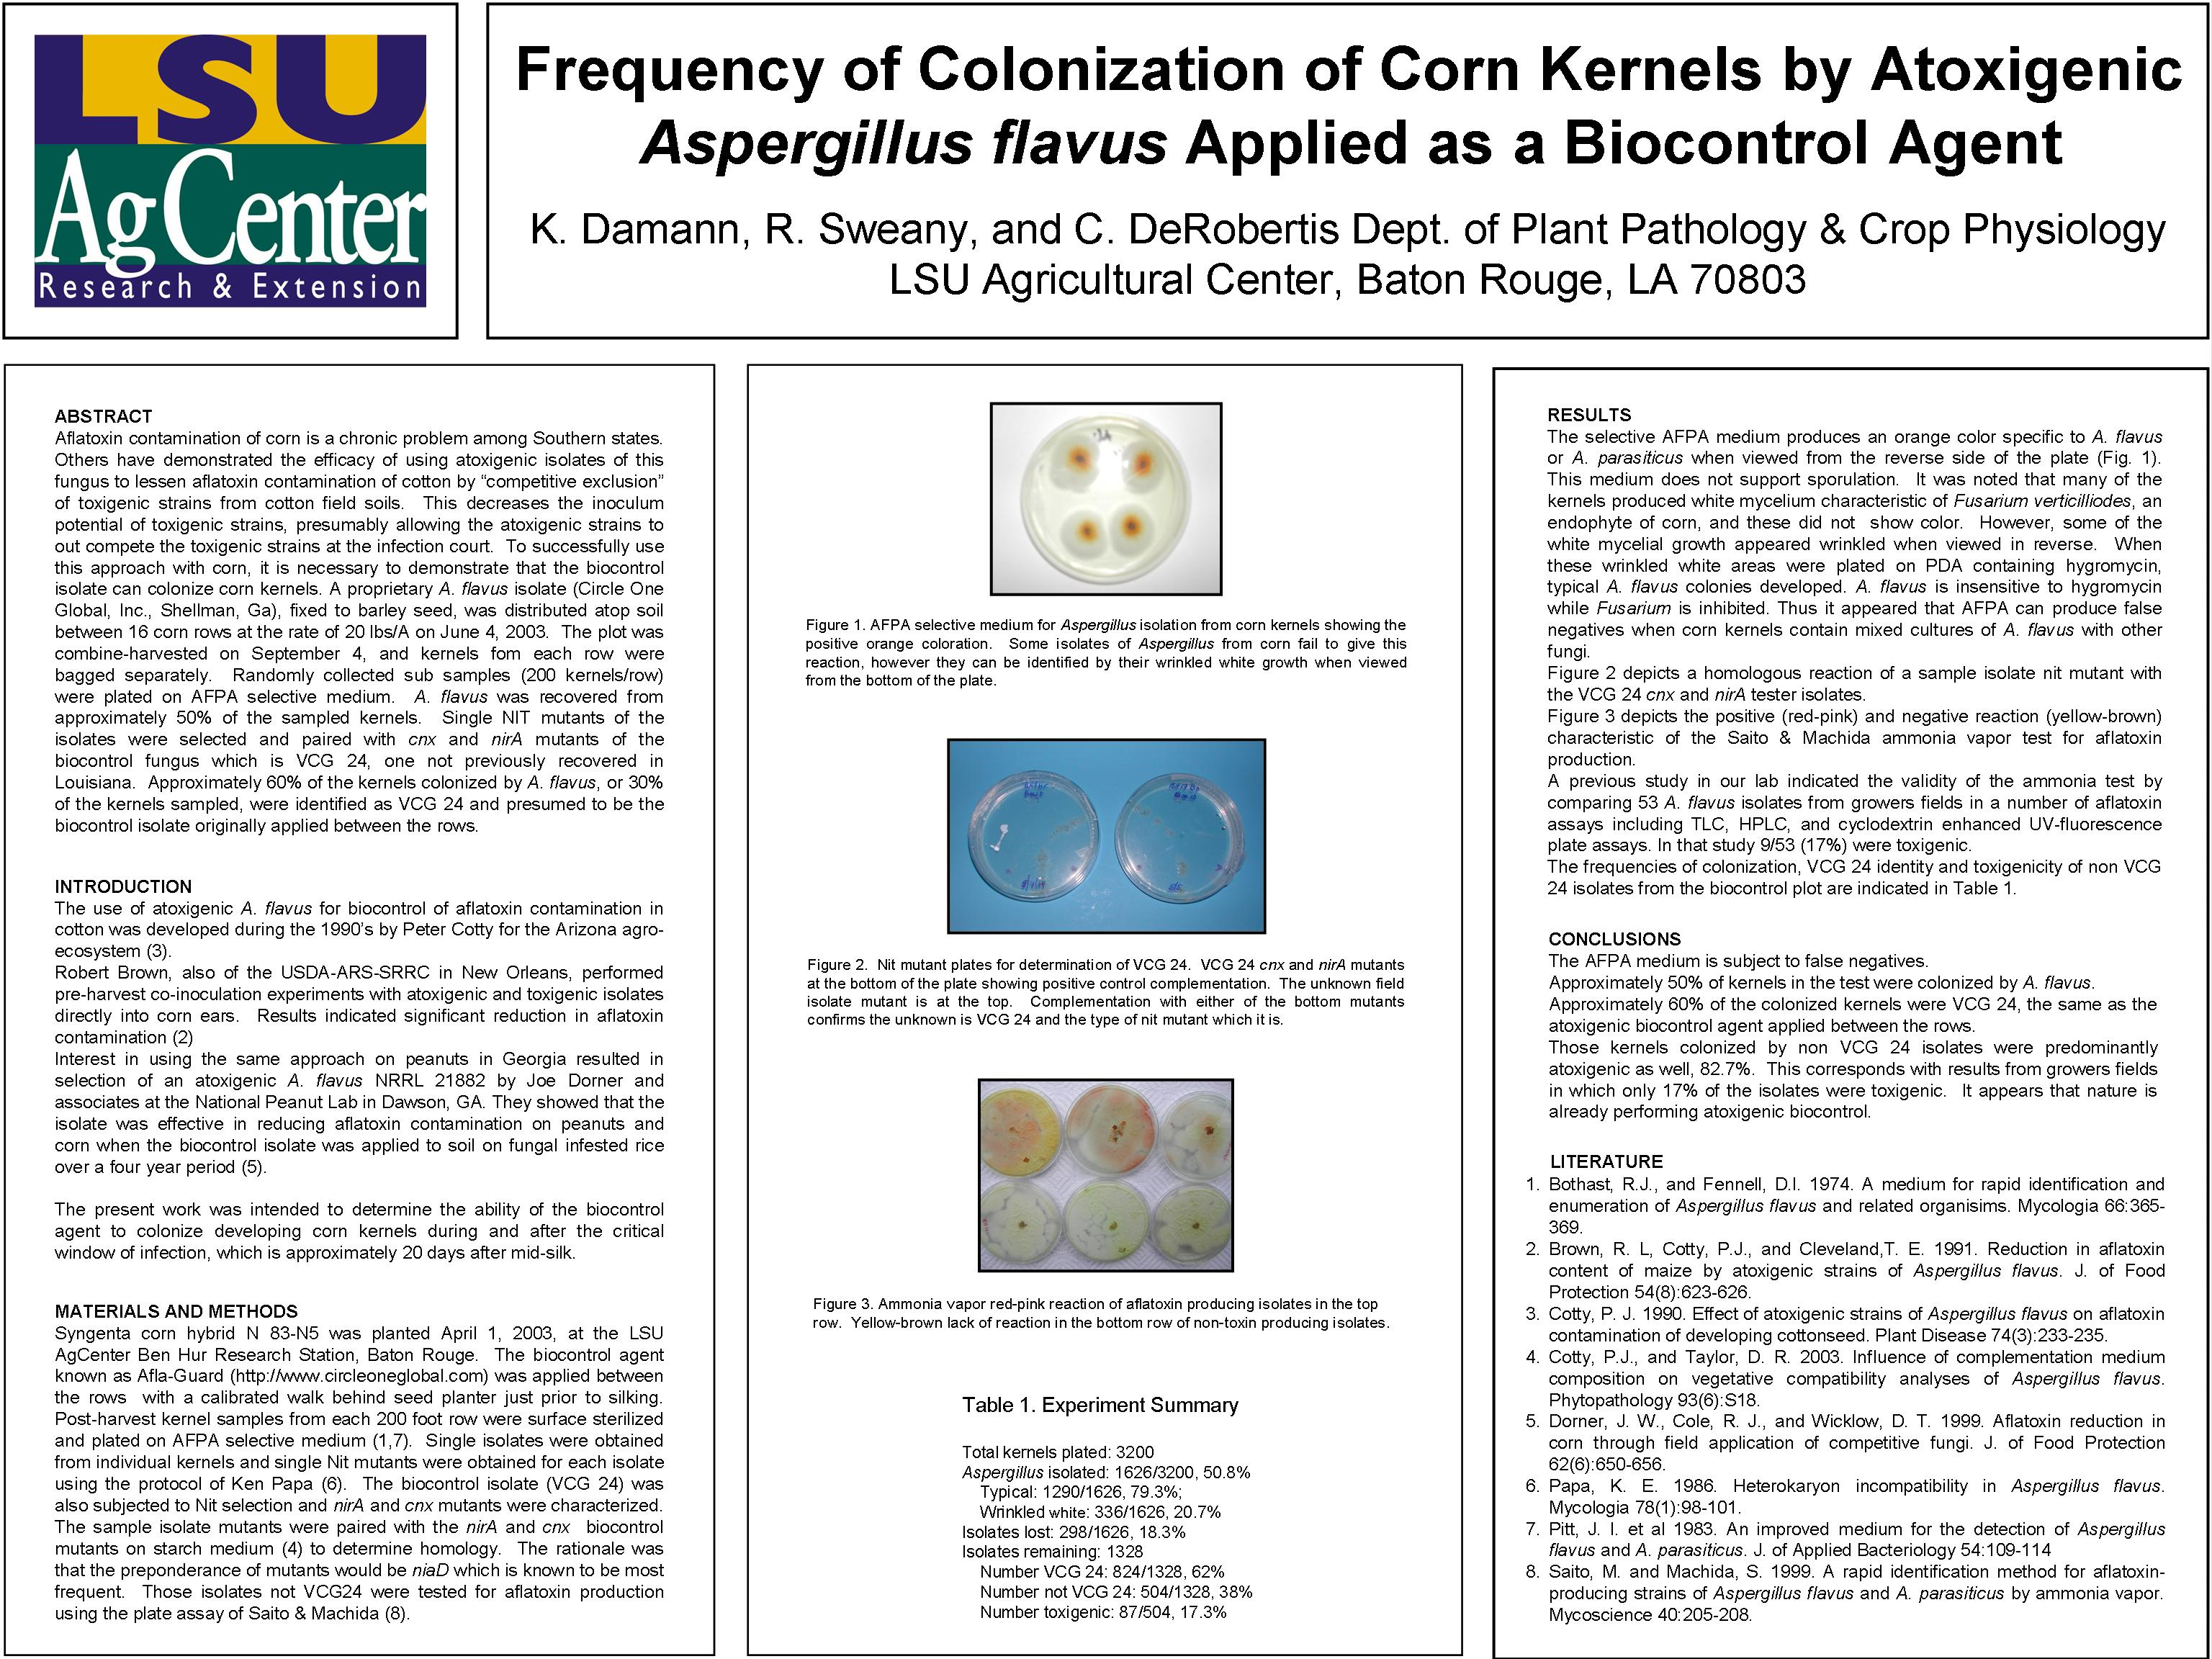 Frequency of Colonization of Corn Kernels